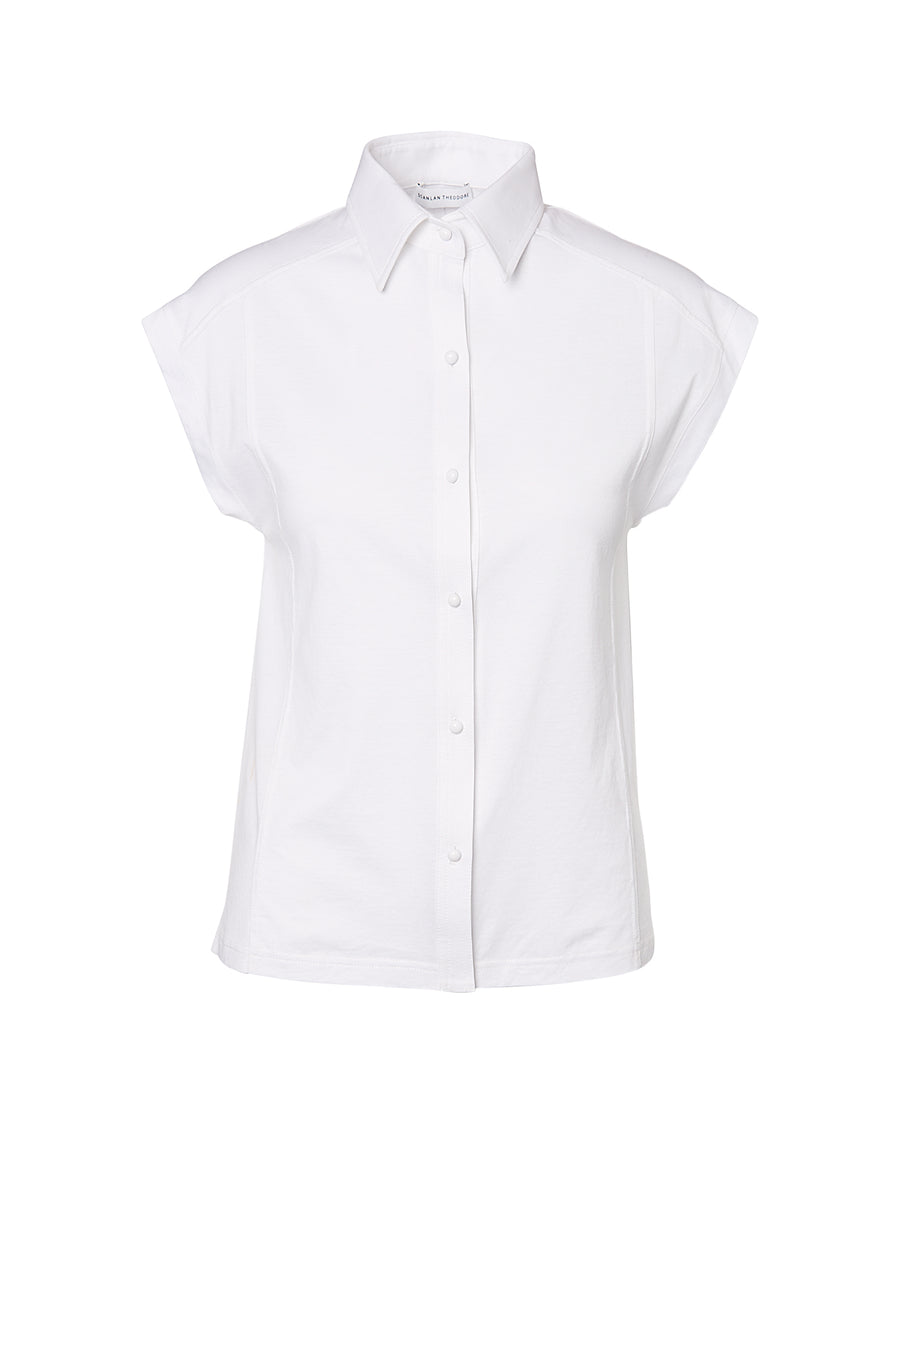 MERCERISED SHIRT, Collar, button down, short sleeve, WHITE color